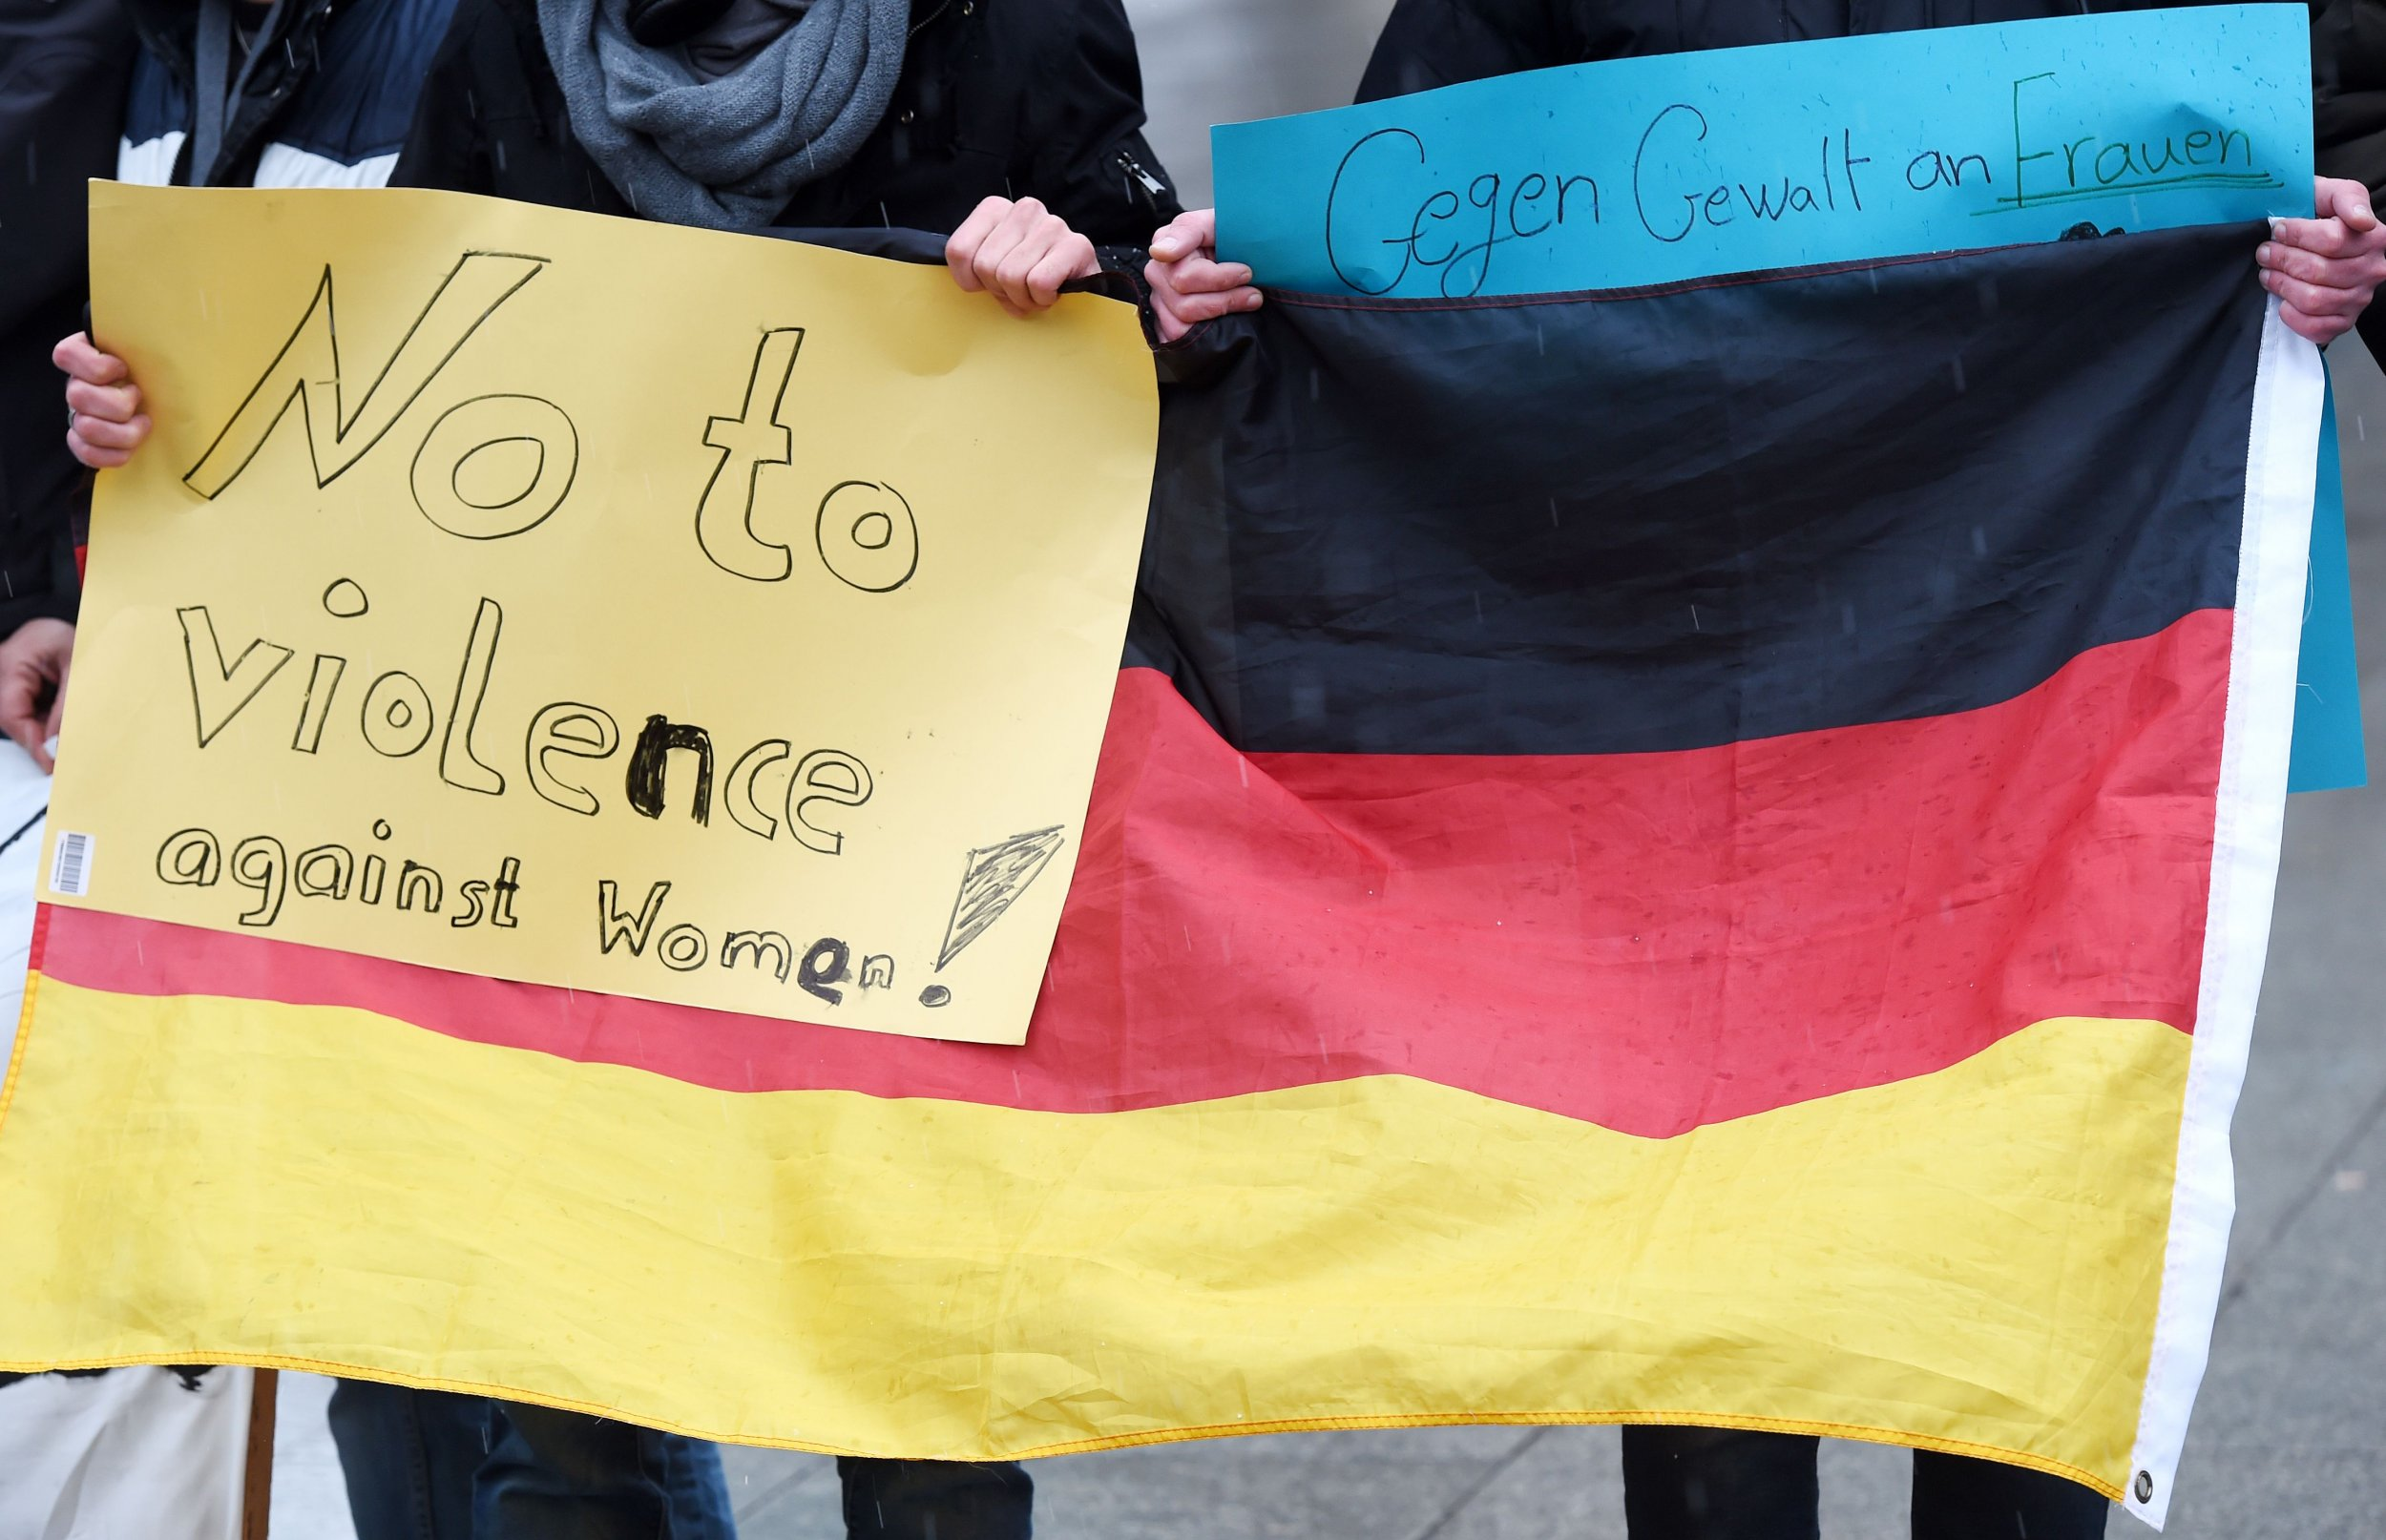 Since sex attacks in the city, Germany has pushed to update its rape laws.